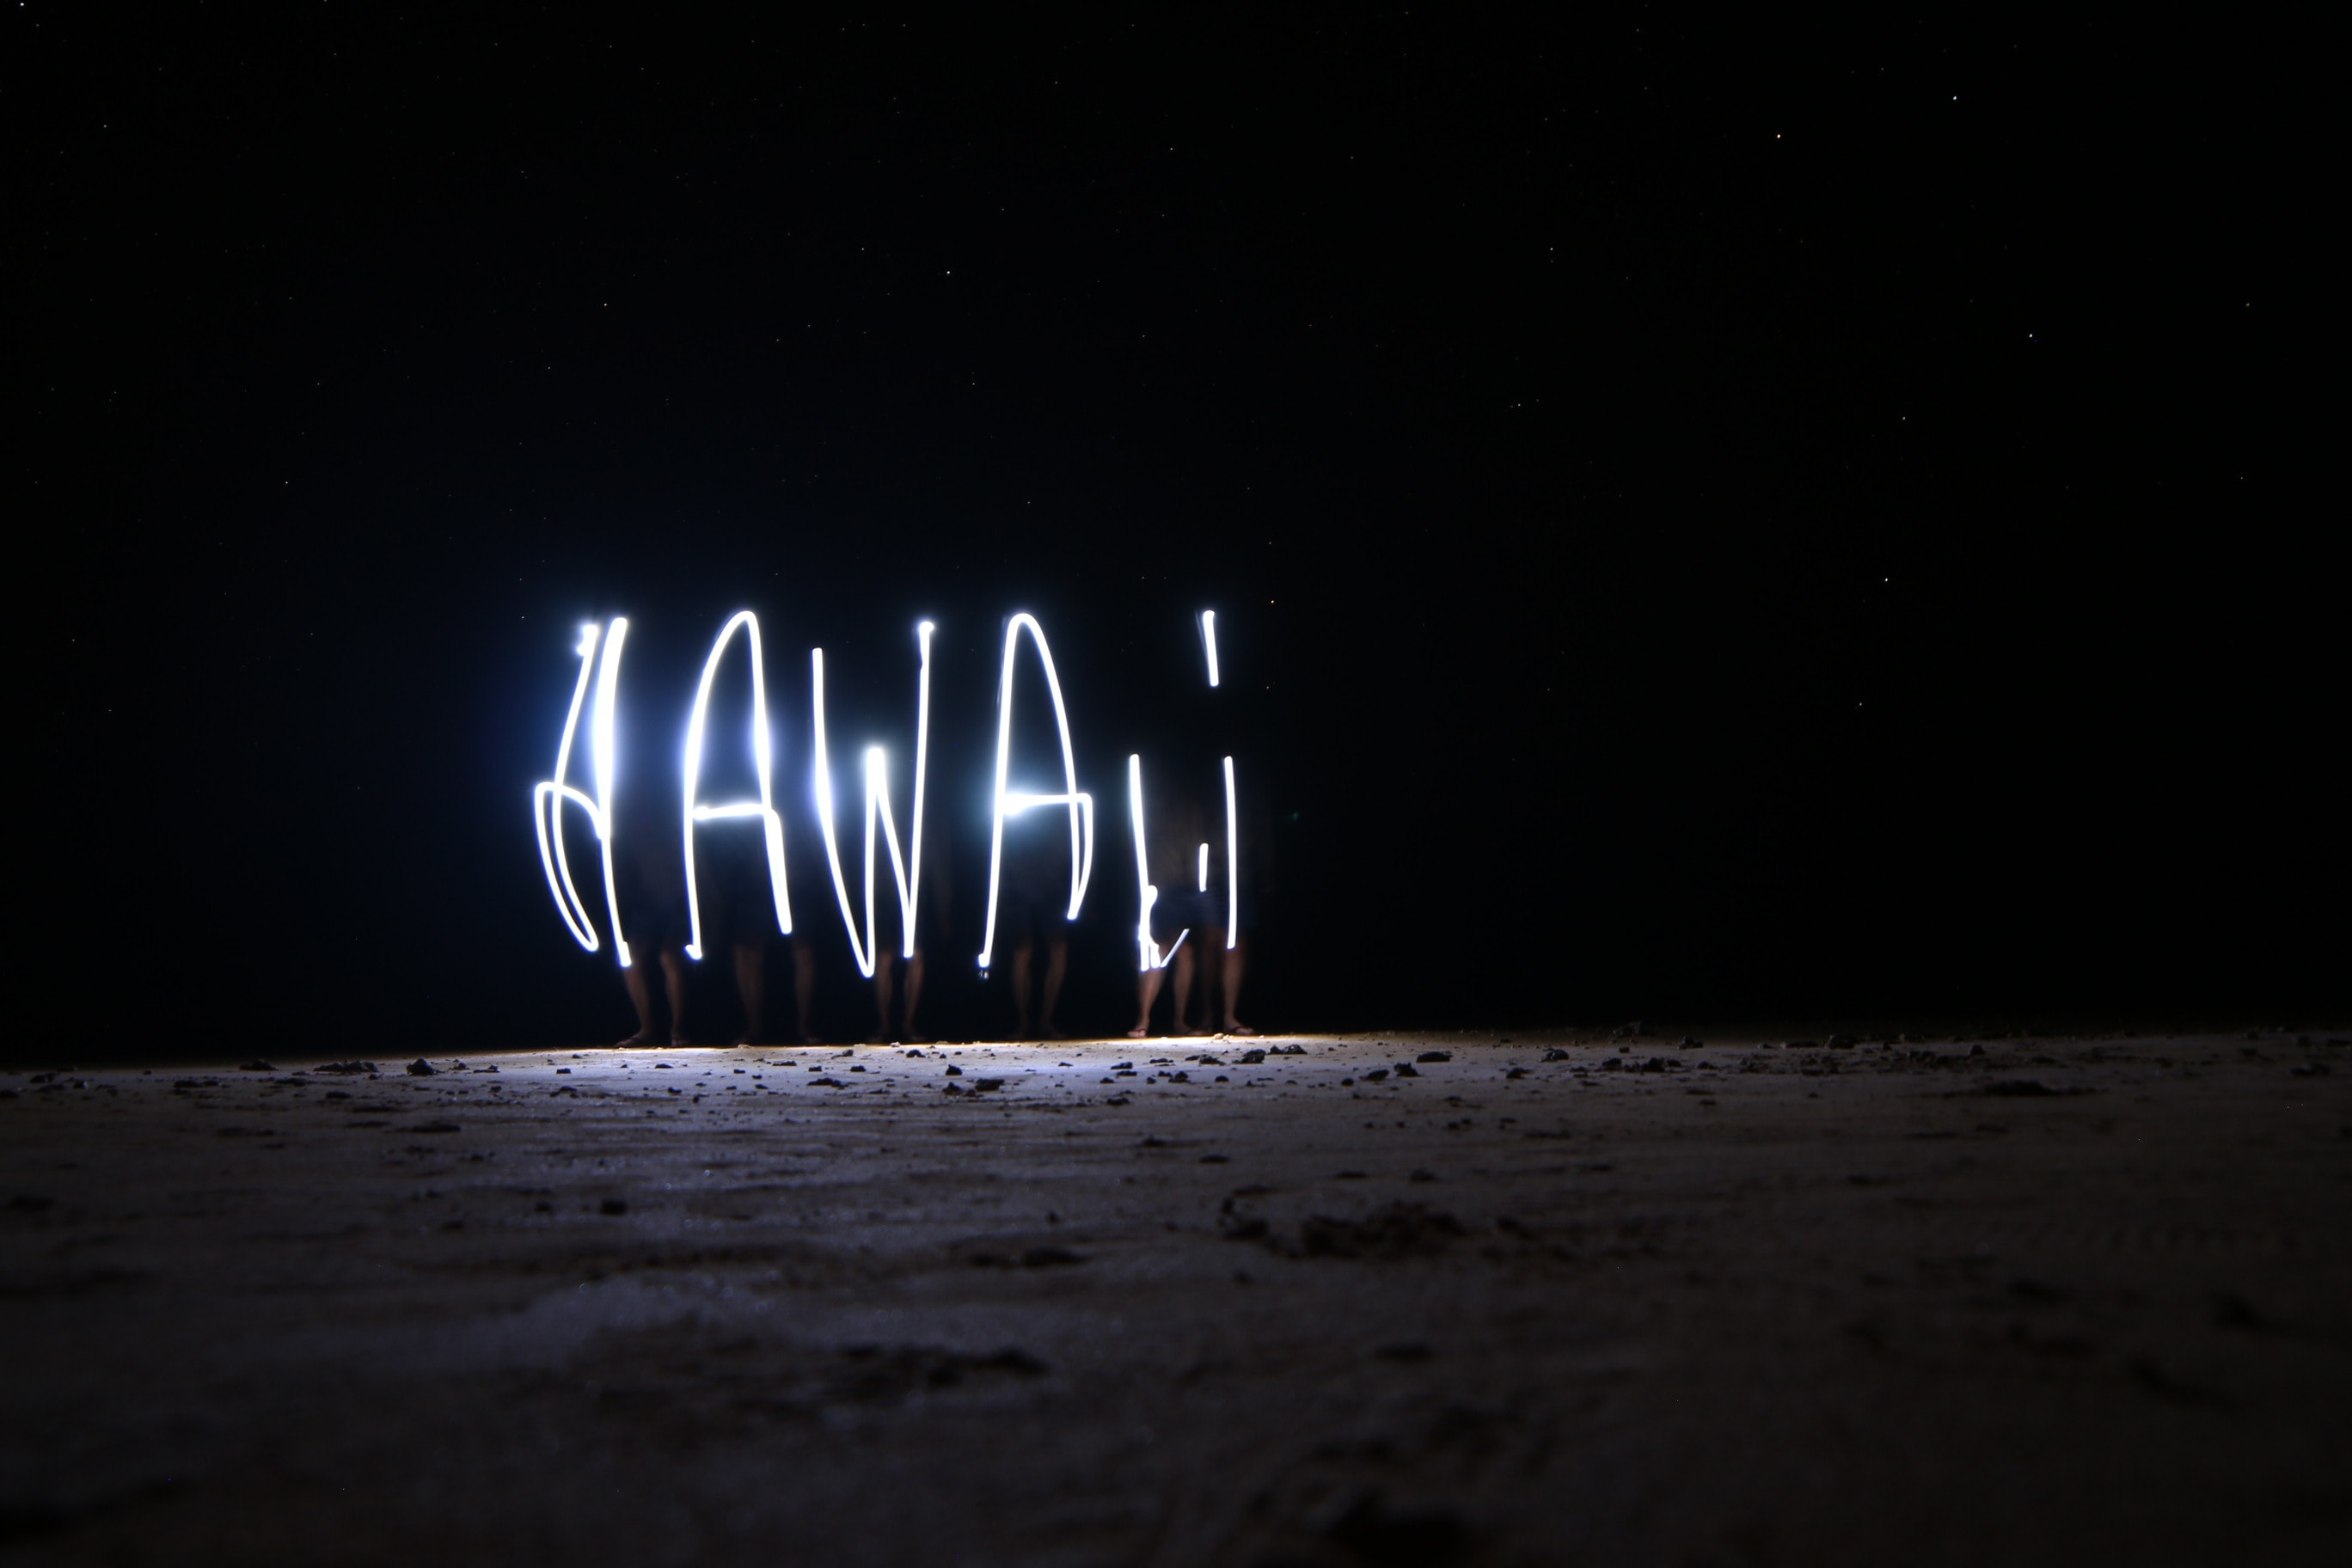 LED light forming Hawaii word